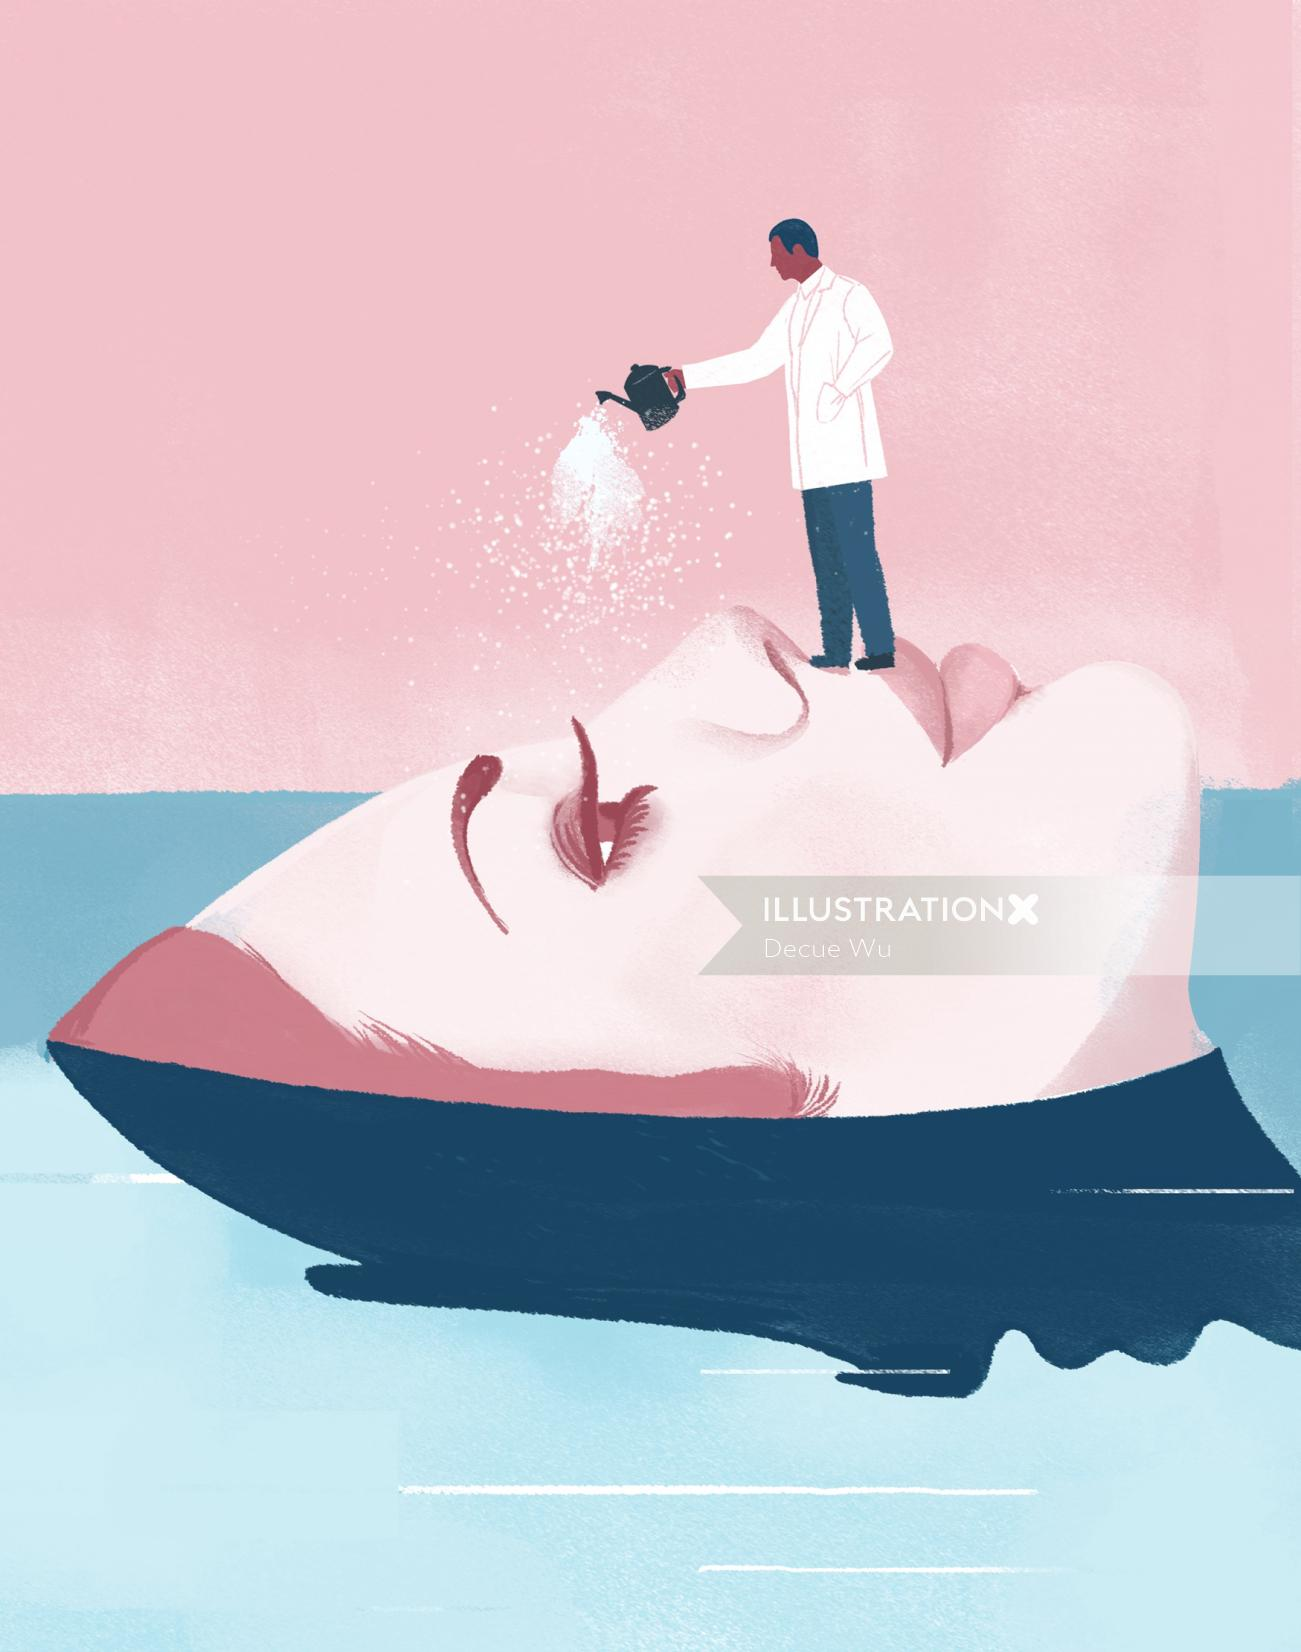 Skin Watery Treat - An Editorial illustration by Decue Wu